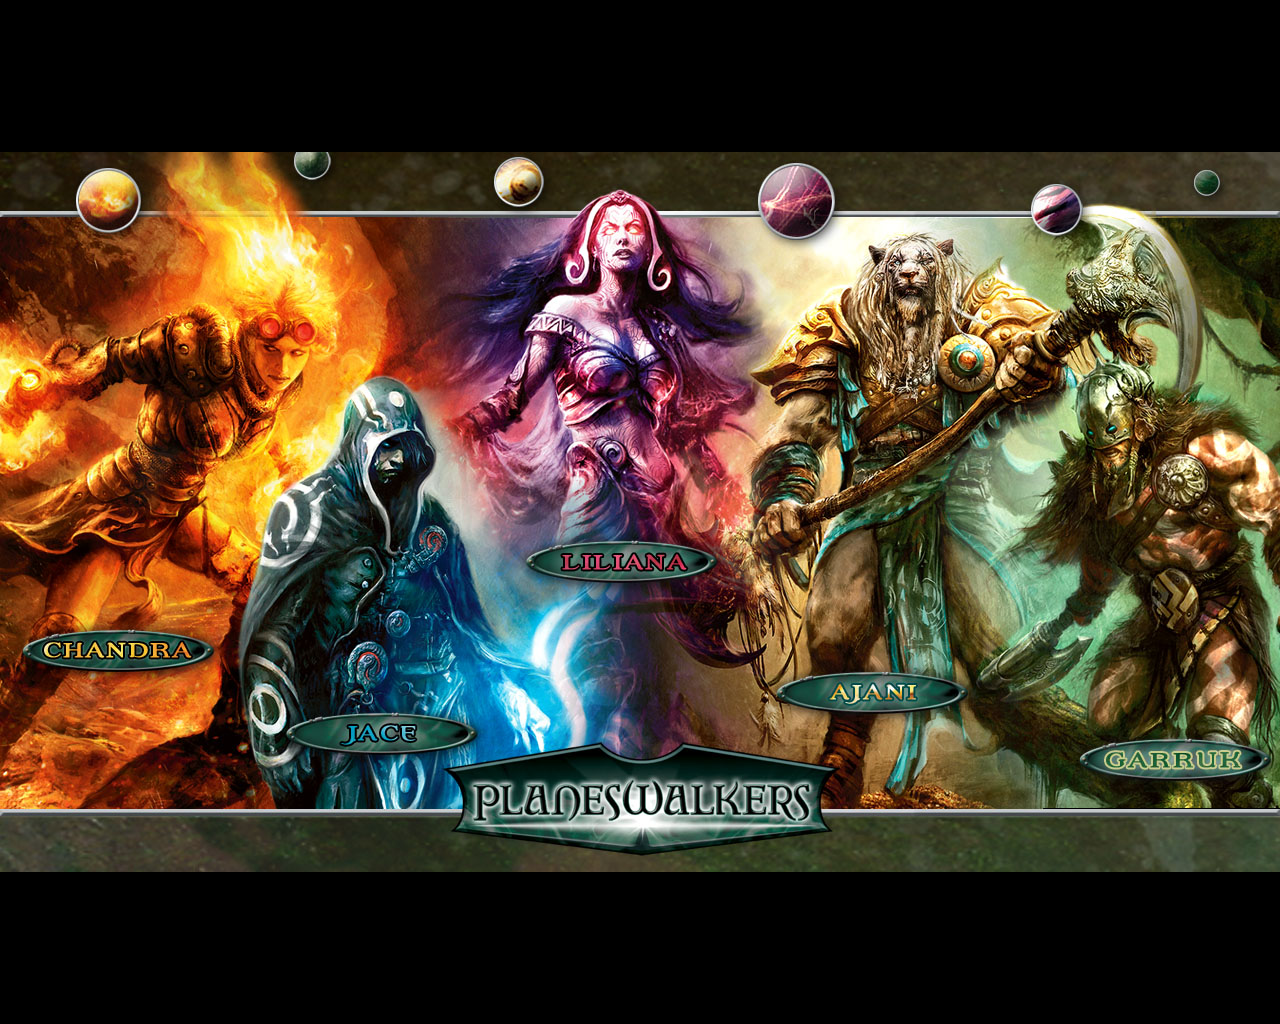 Magic the gathering on PSP (Homebrew) | IGN Boards